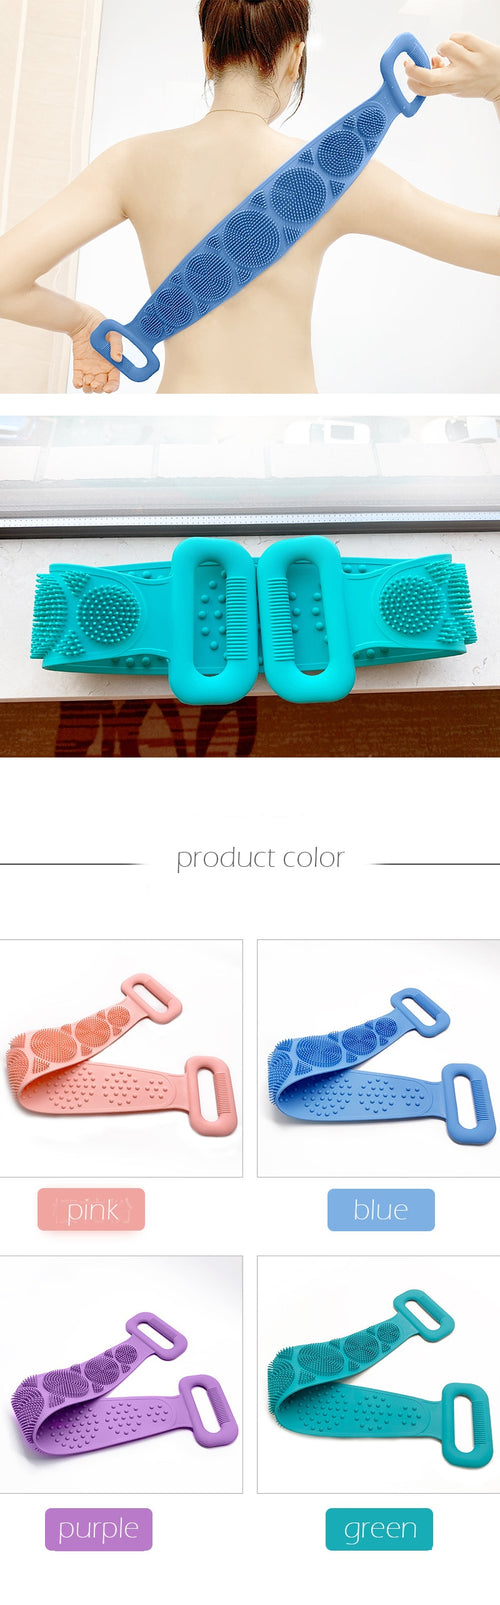 Silicone Exfoliating Massaging Double Sided Shower Back Scrubber